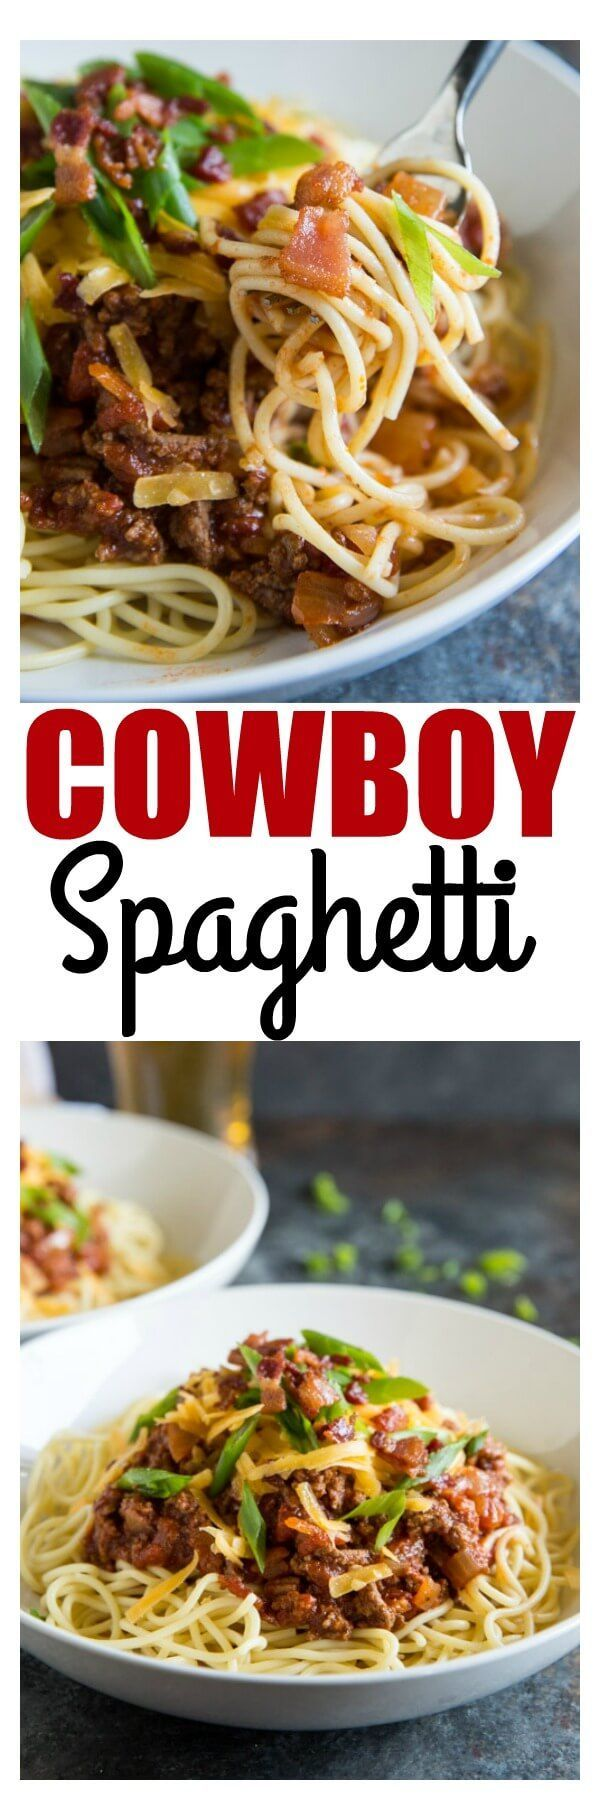 Trust no one but cowboys to upgrade your spaghetti. Bacon, cheese, and lots of hot sauce make Cowboy Spaghetti a family favorite! via @culinaryhill